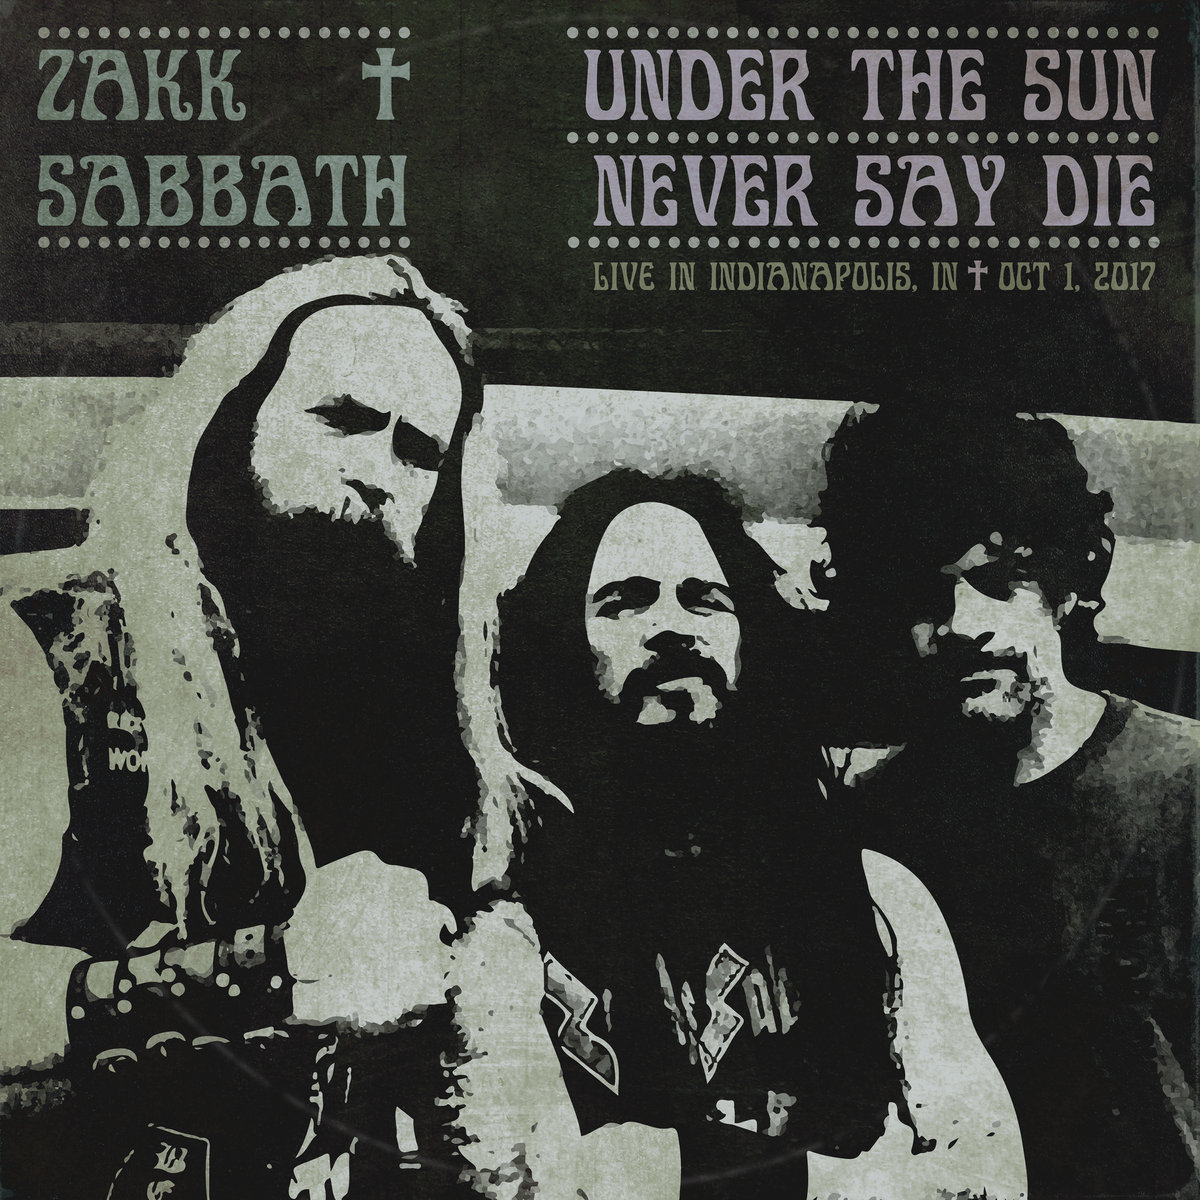 Under The Sun Never Say Die Live Bootleg Zakk Sabbath